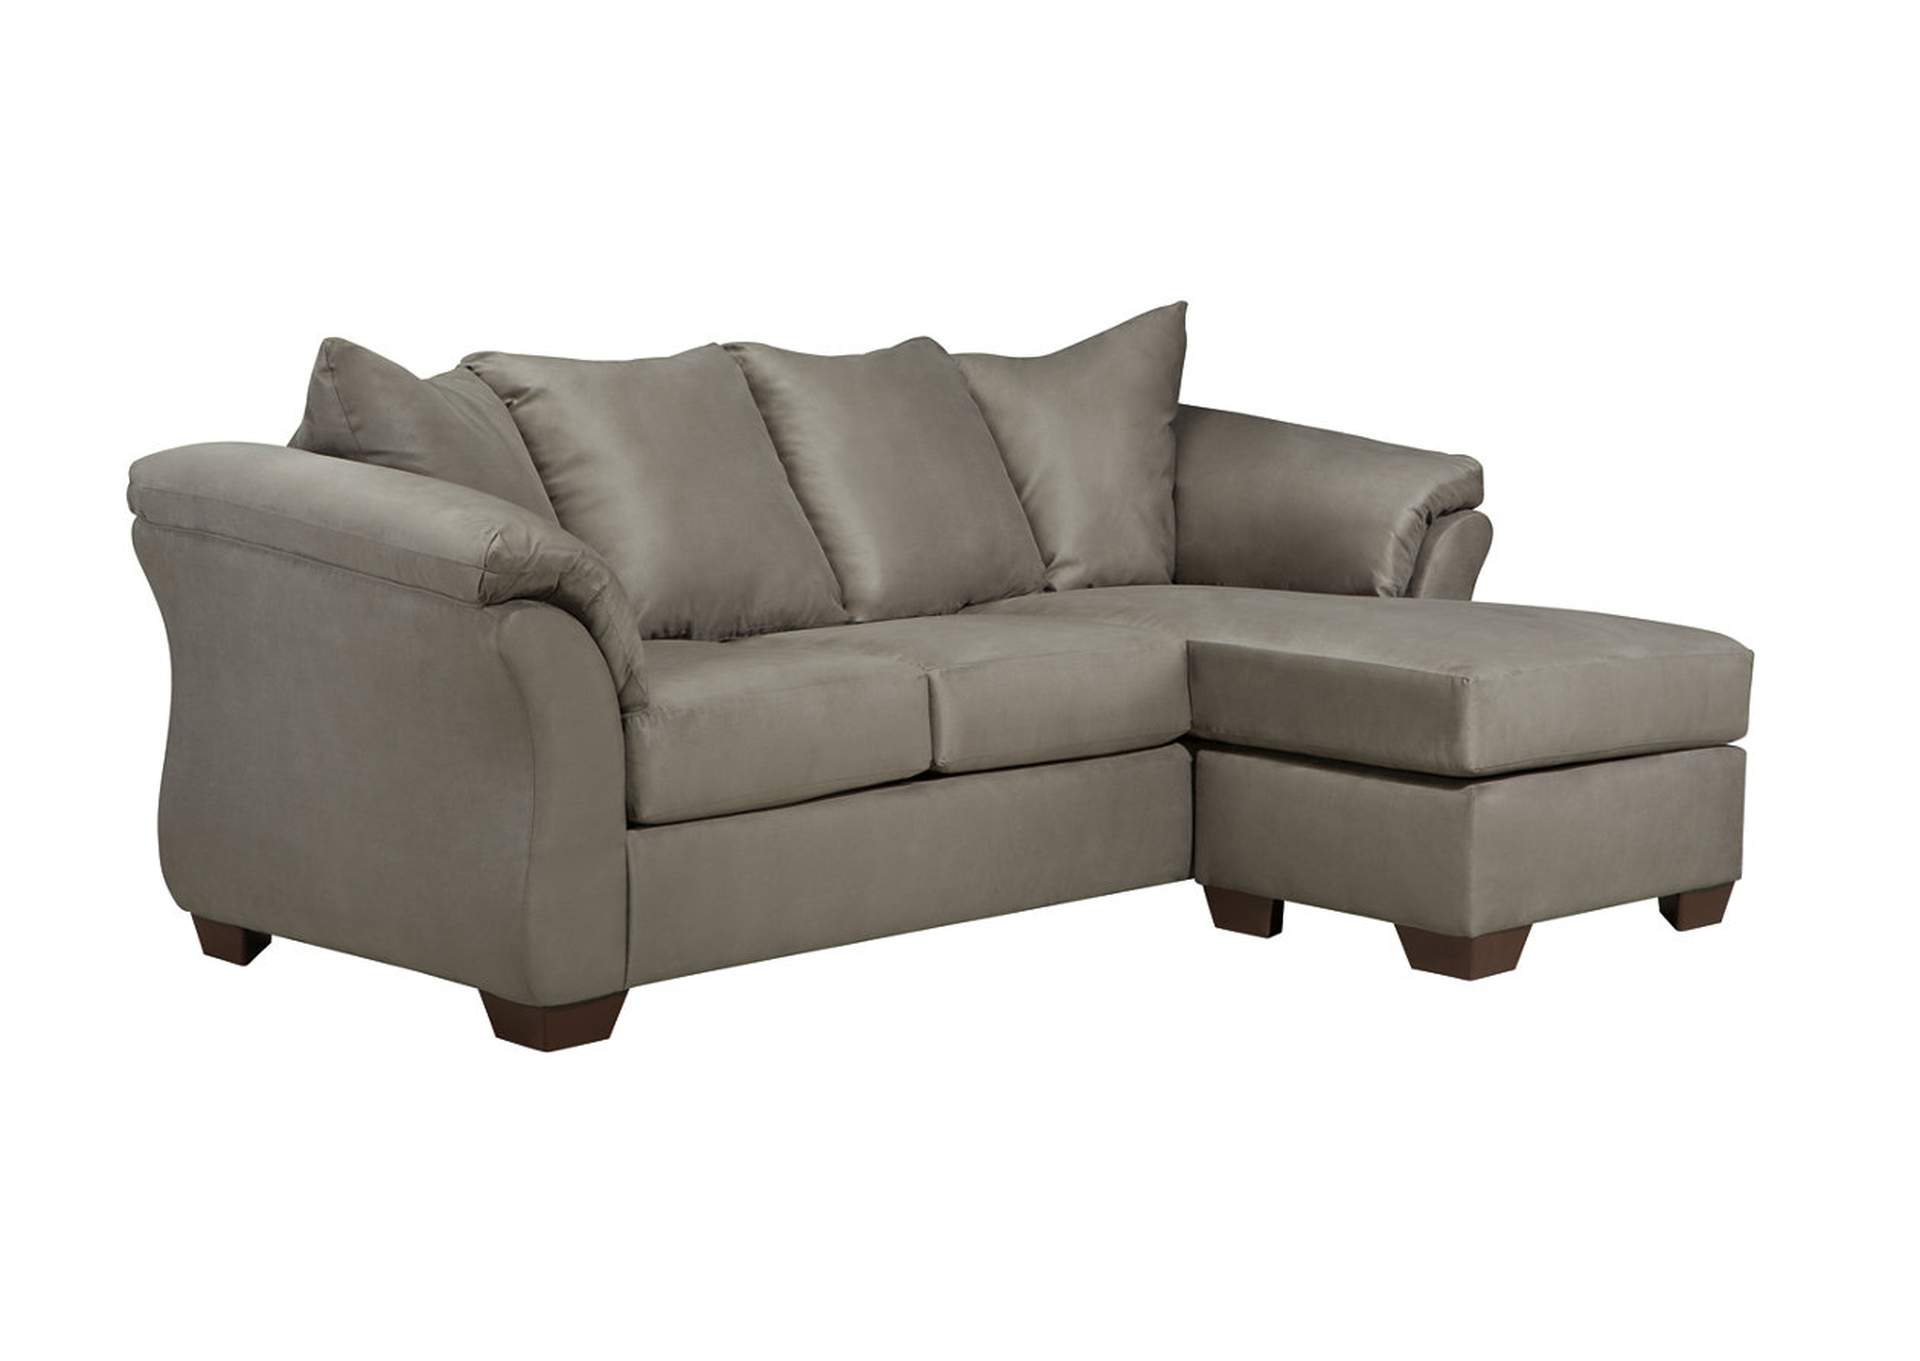 Jerusalem Furniture Philadelphia Furniture Store | Home Furnishings  Philadelphia, PA Darcy Cobblestone Sofa Chaise